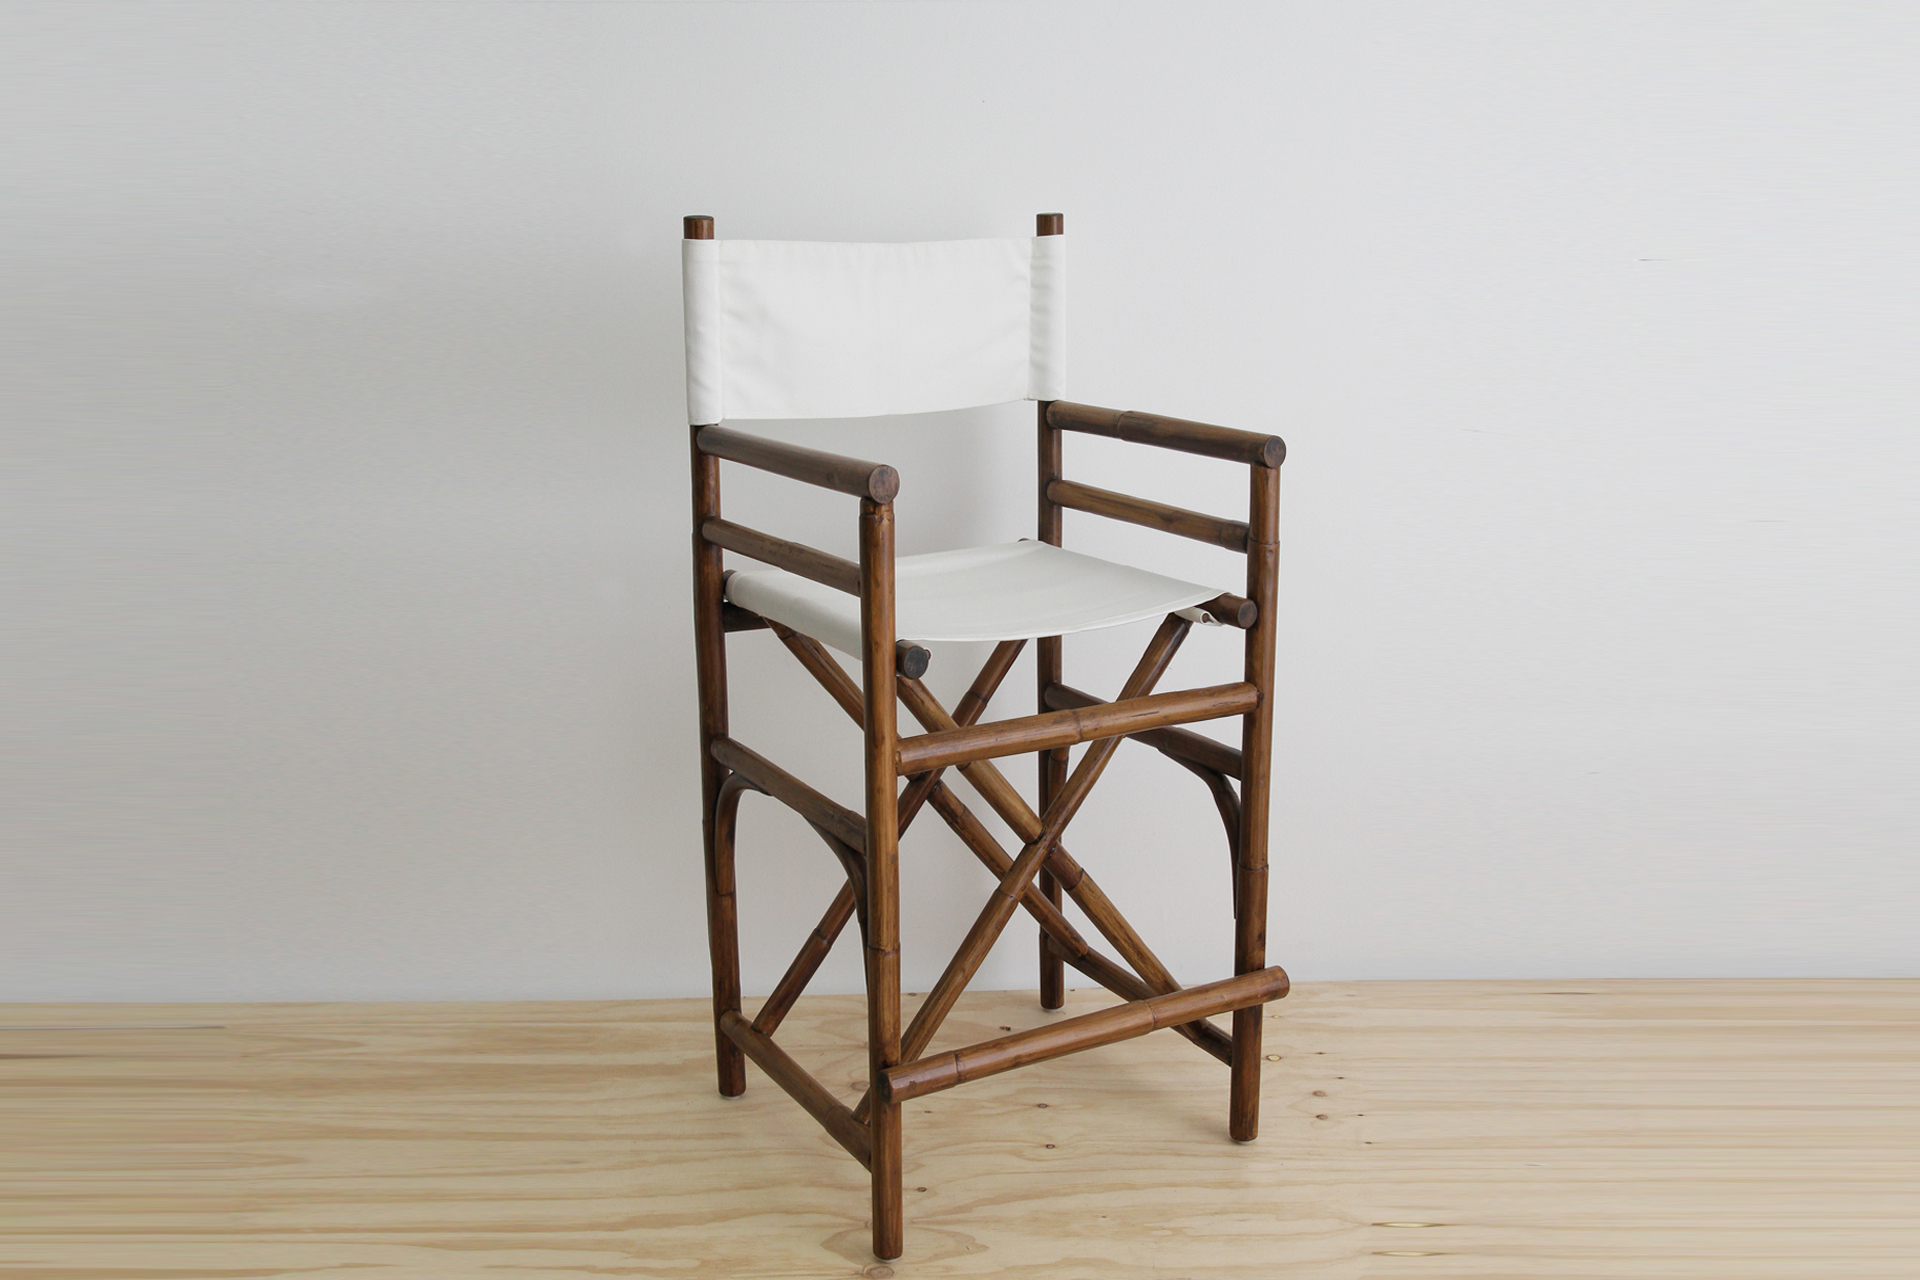 directors chair bar stool room and board madrid director barstool naturally cane rattan wicker furniture